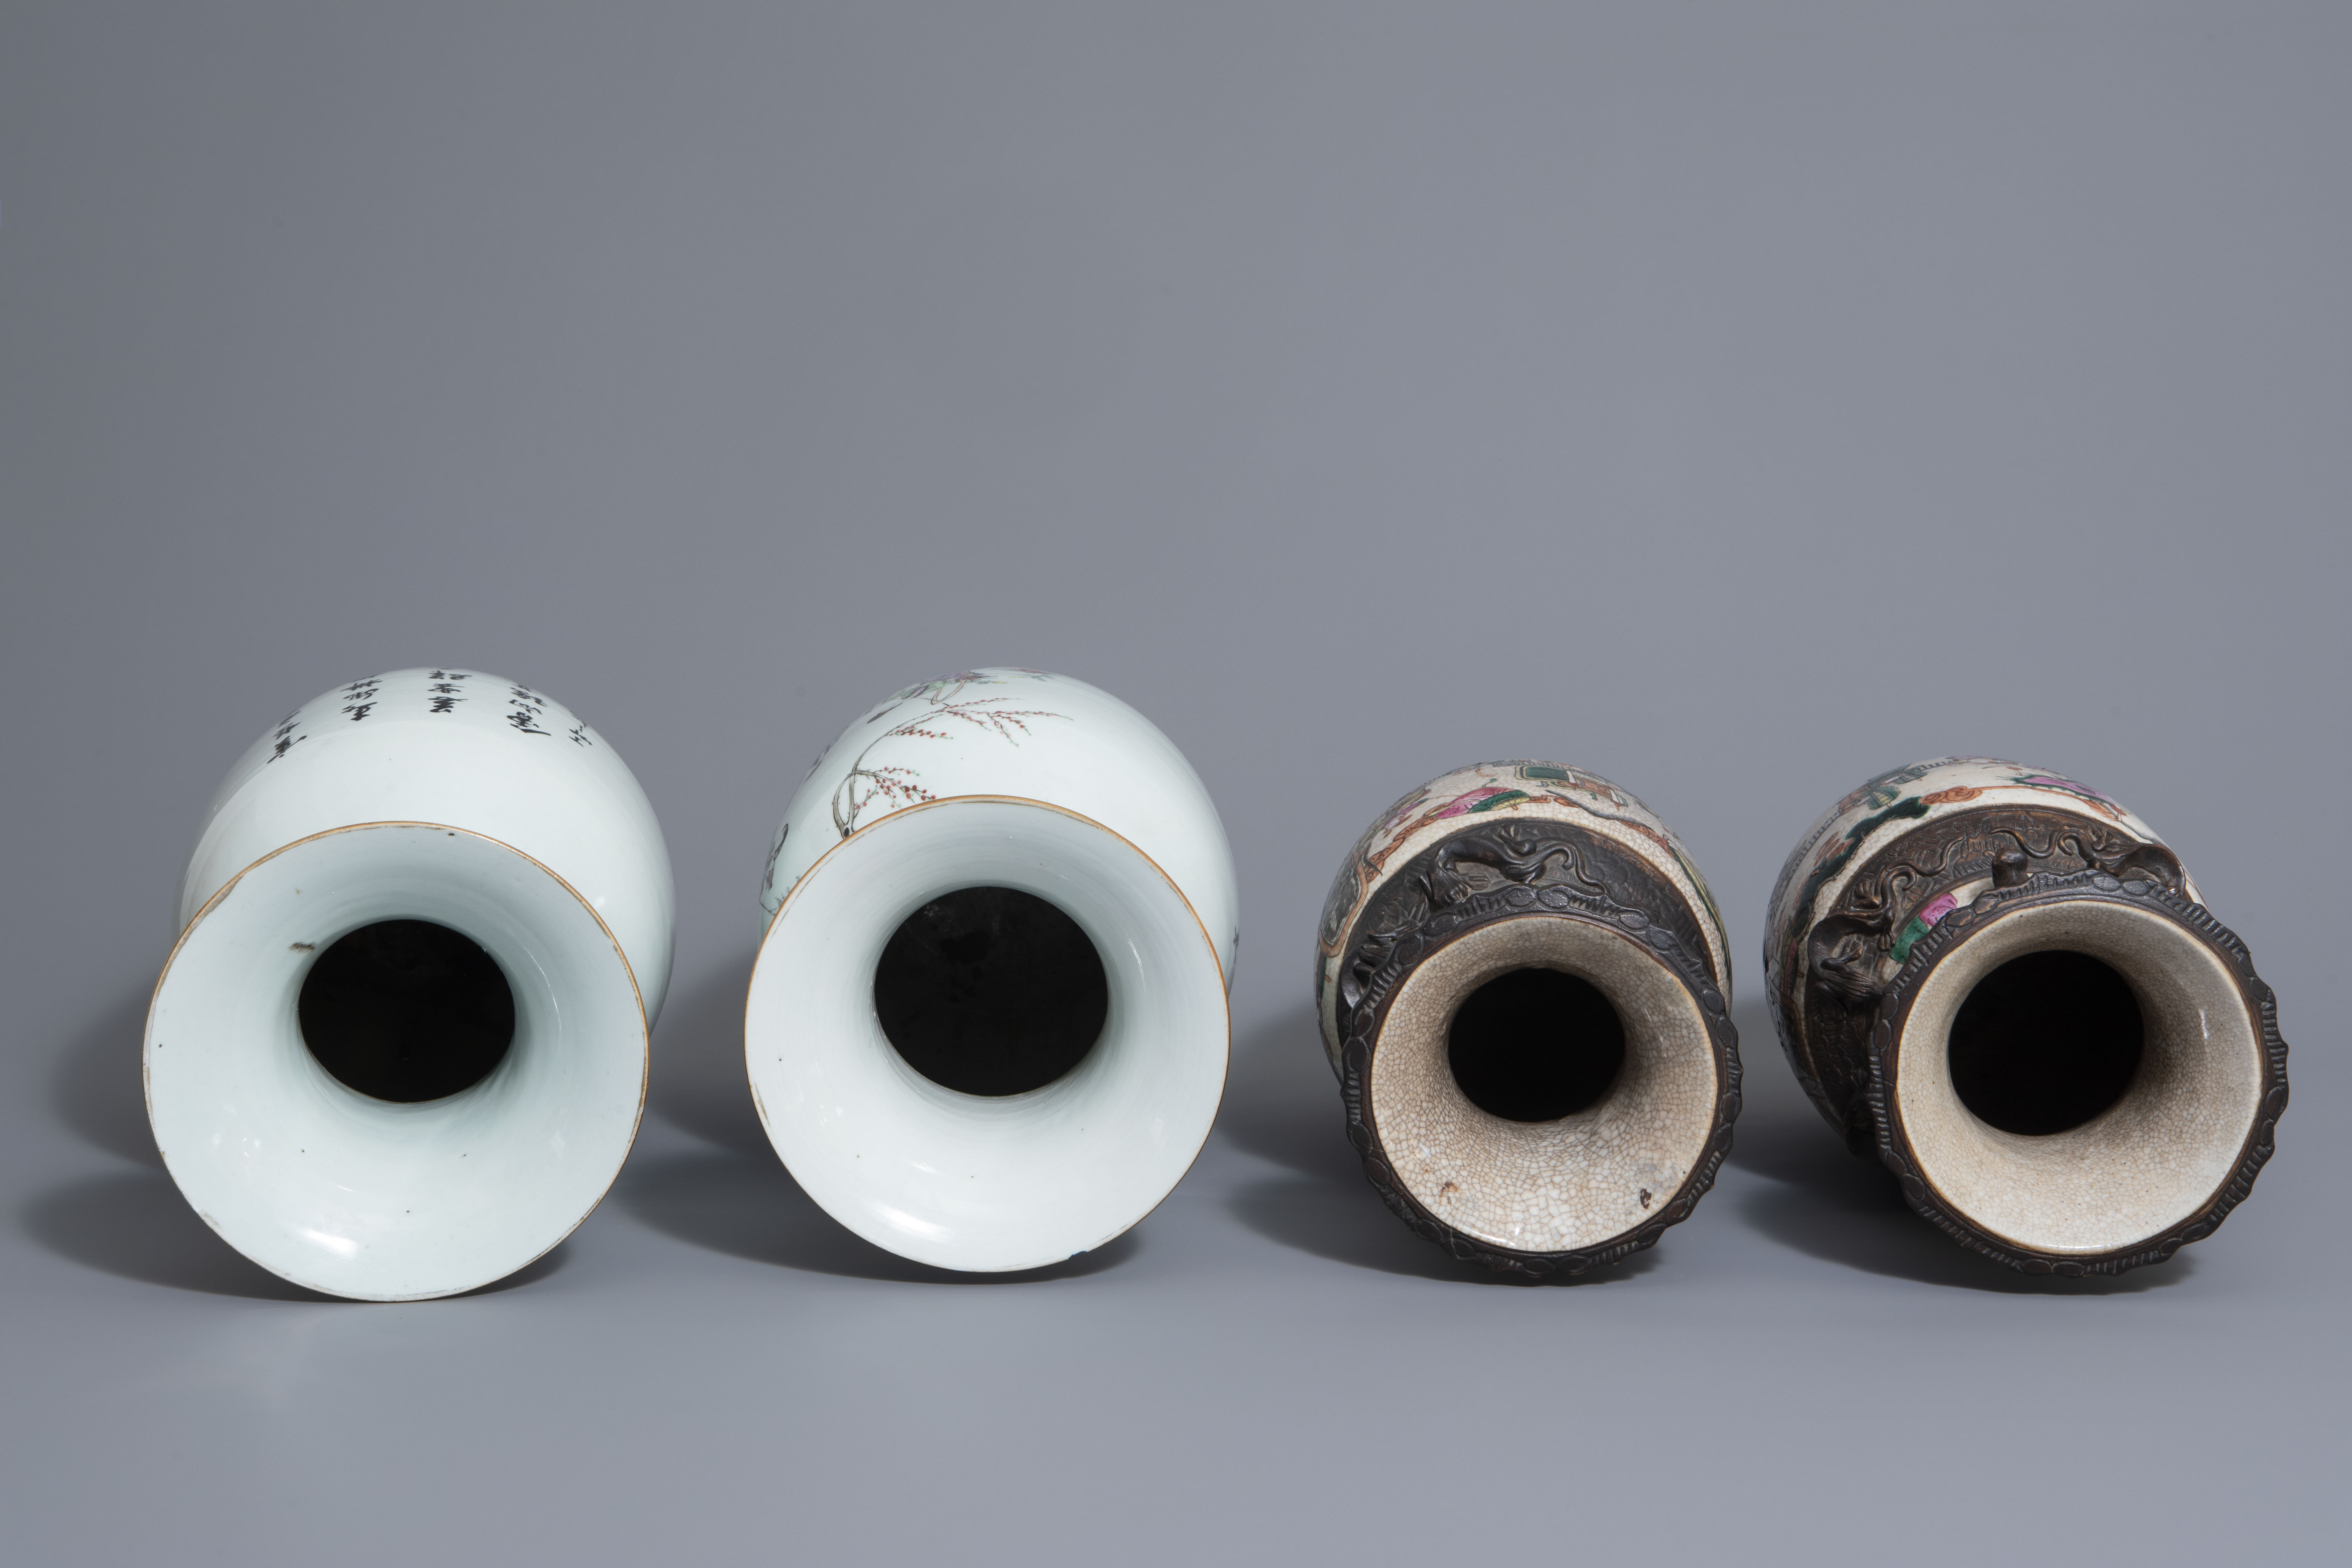 Two pairs of Chinese famille rose and Nanking crackle glazed vases, 19th/20th C. - Image 6 of 7